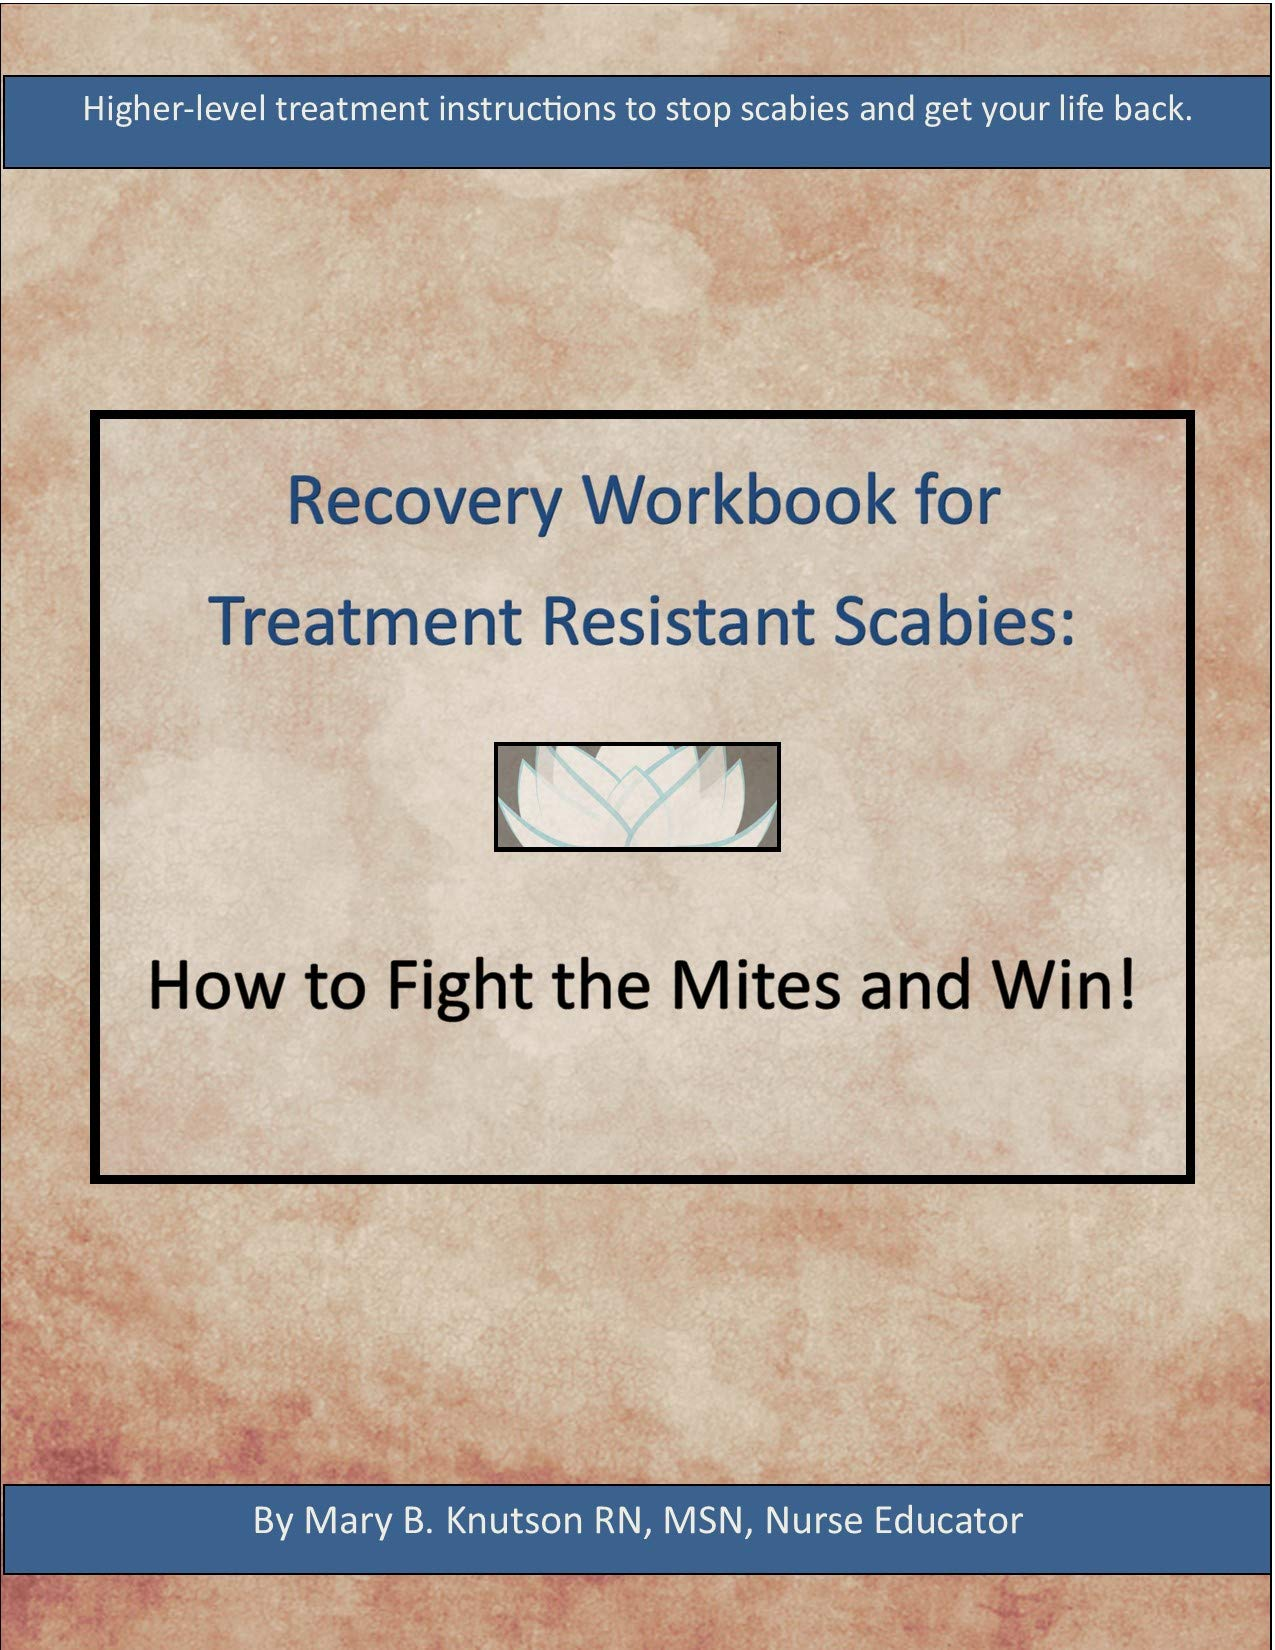 Recovery Workbook for Treatment Resistant Scabies: How to Fight the Mites and Win!